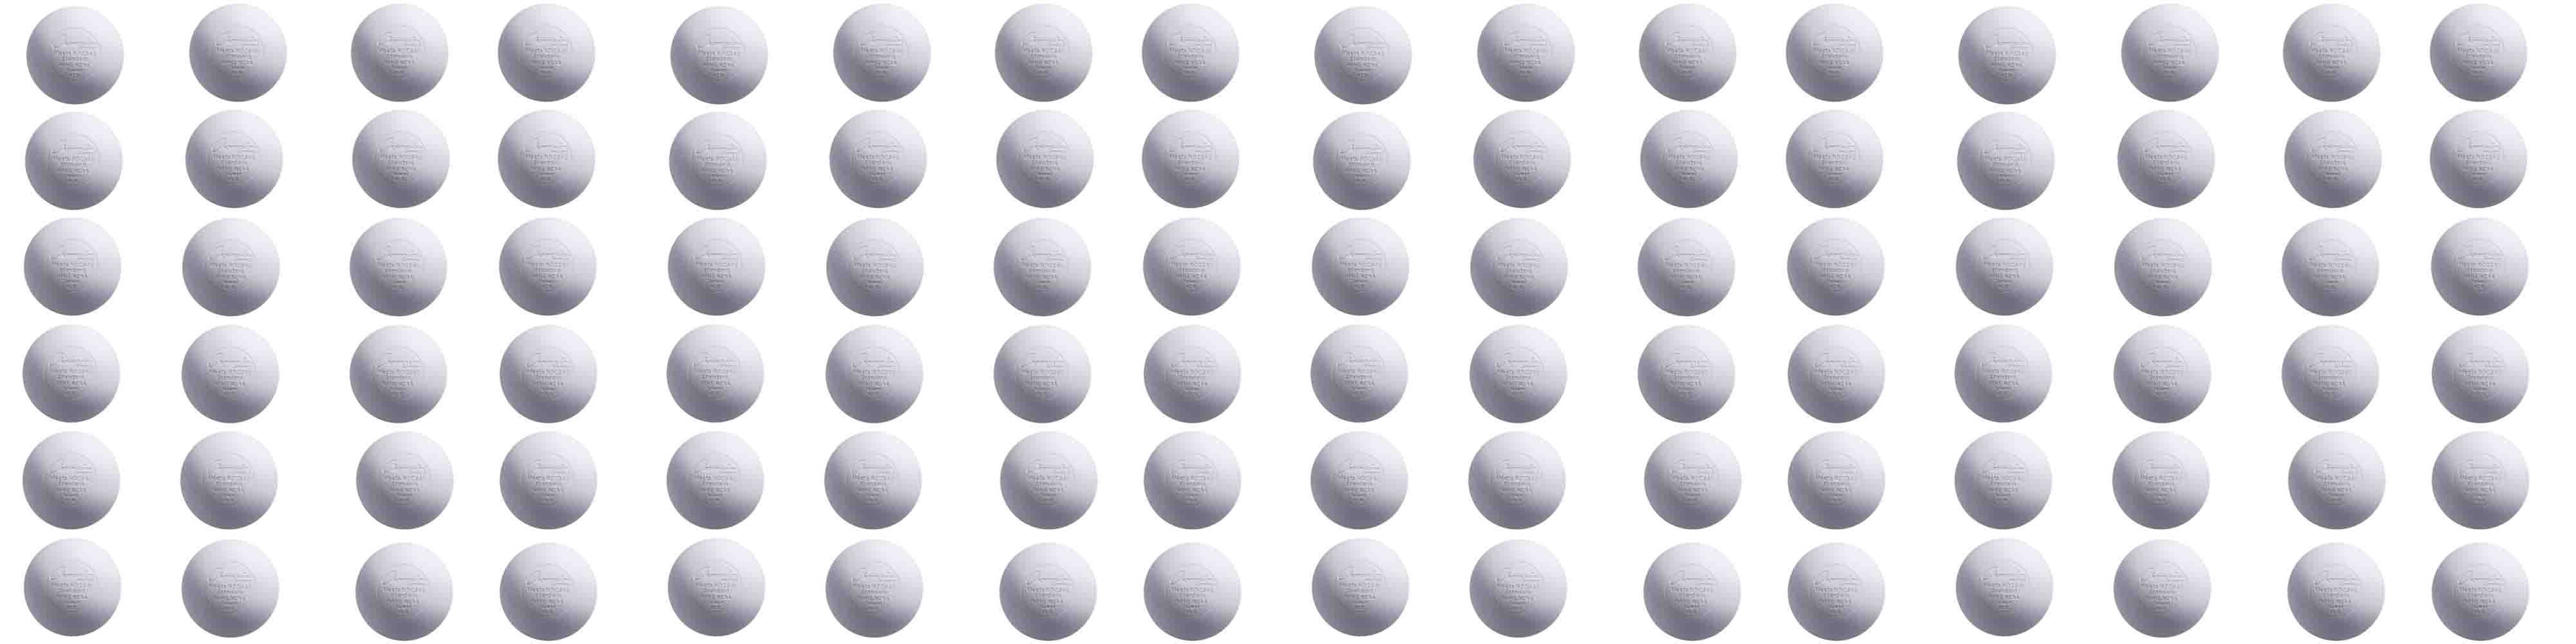 Champion Sports Official Lacrosse Balls 96 PACK by Champion